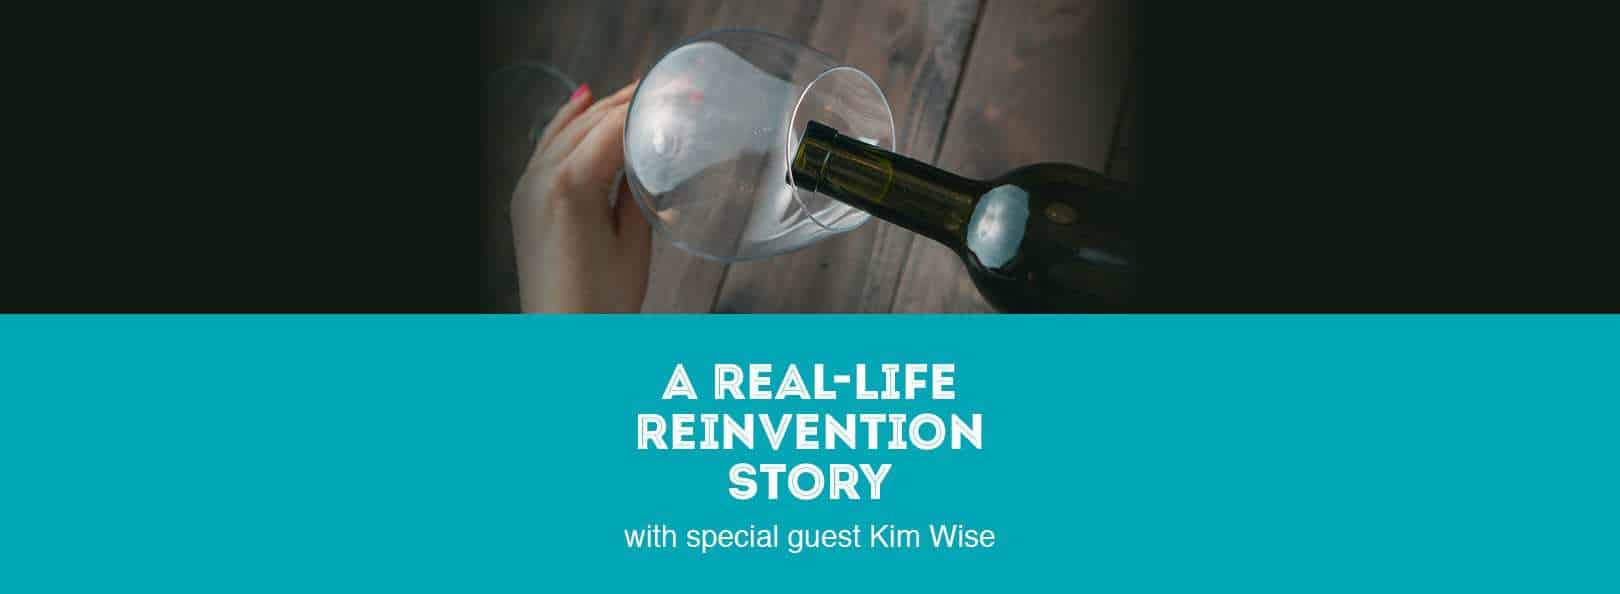 A Real-Life Reinvention Story with special guest Kim Wise